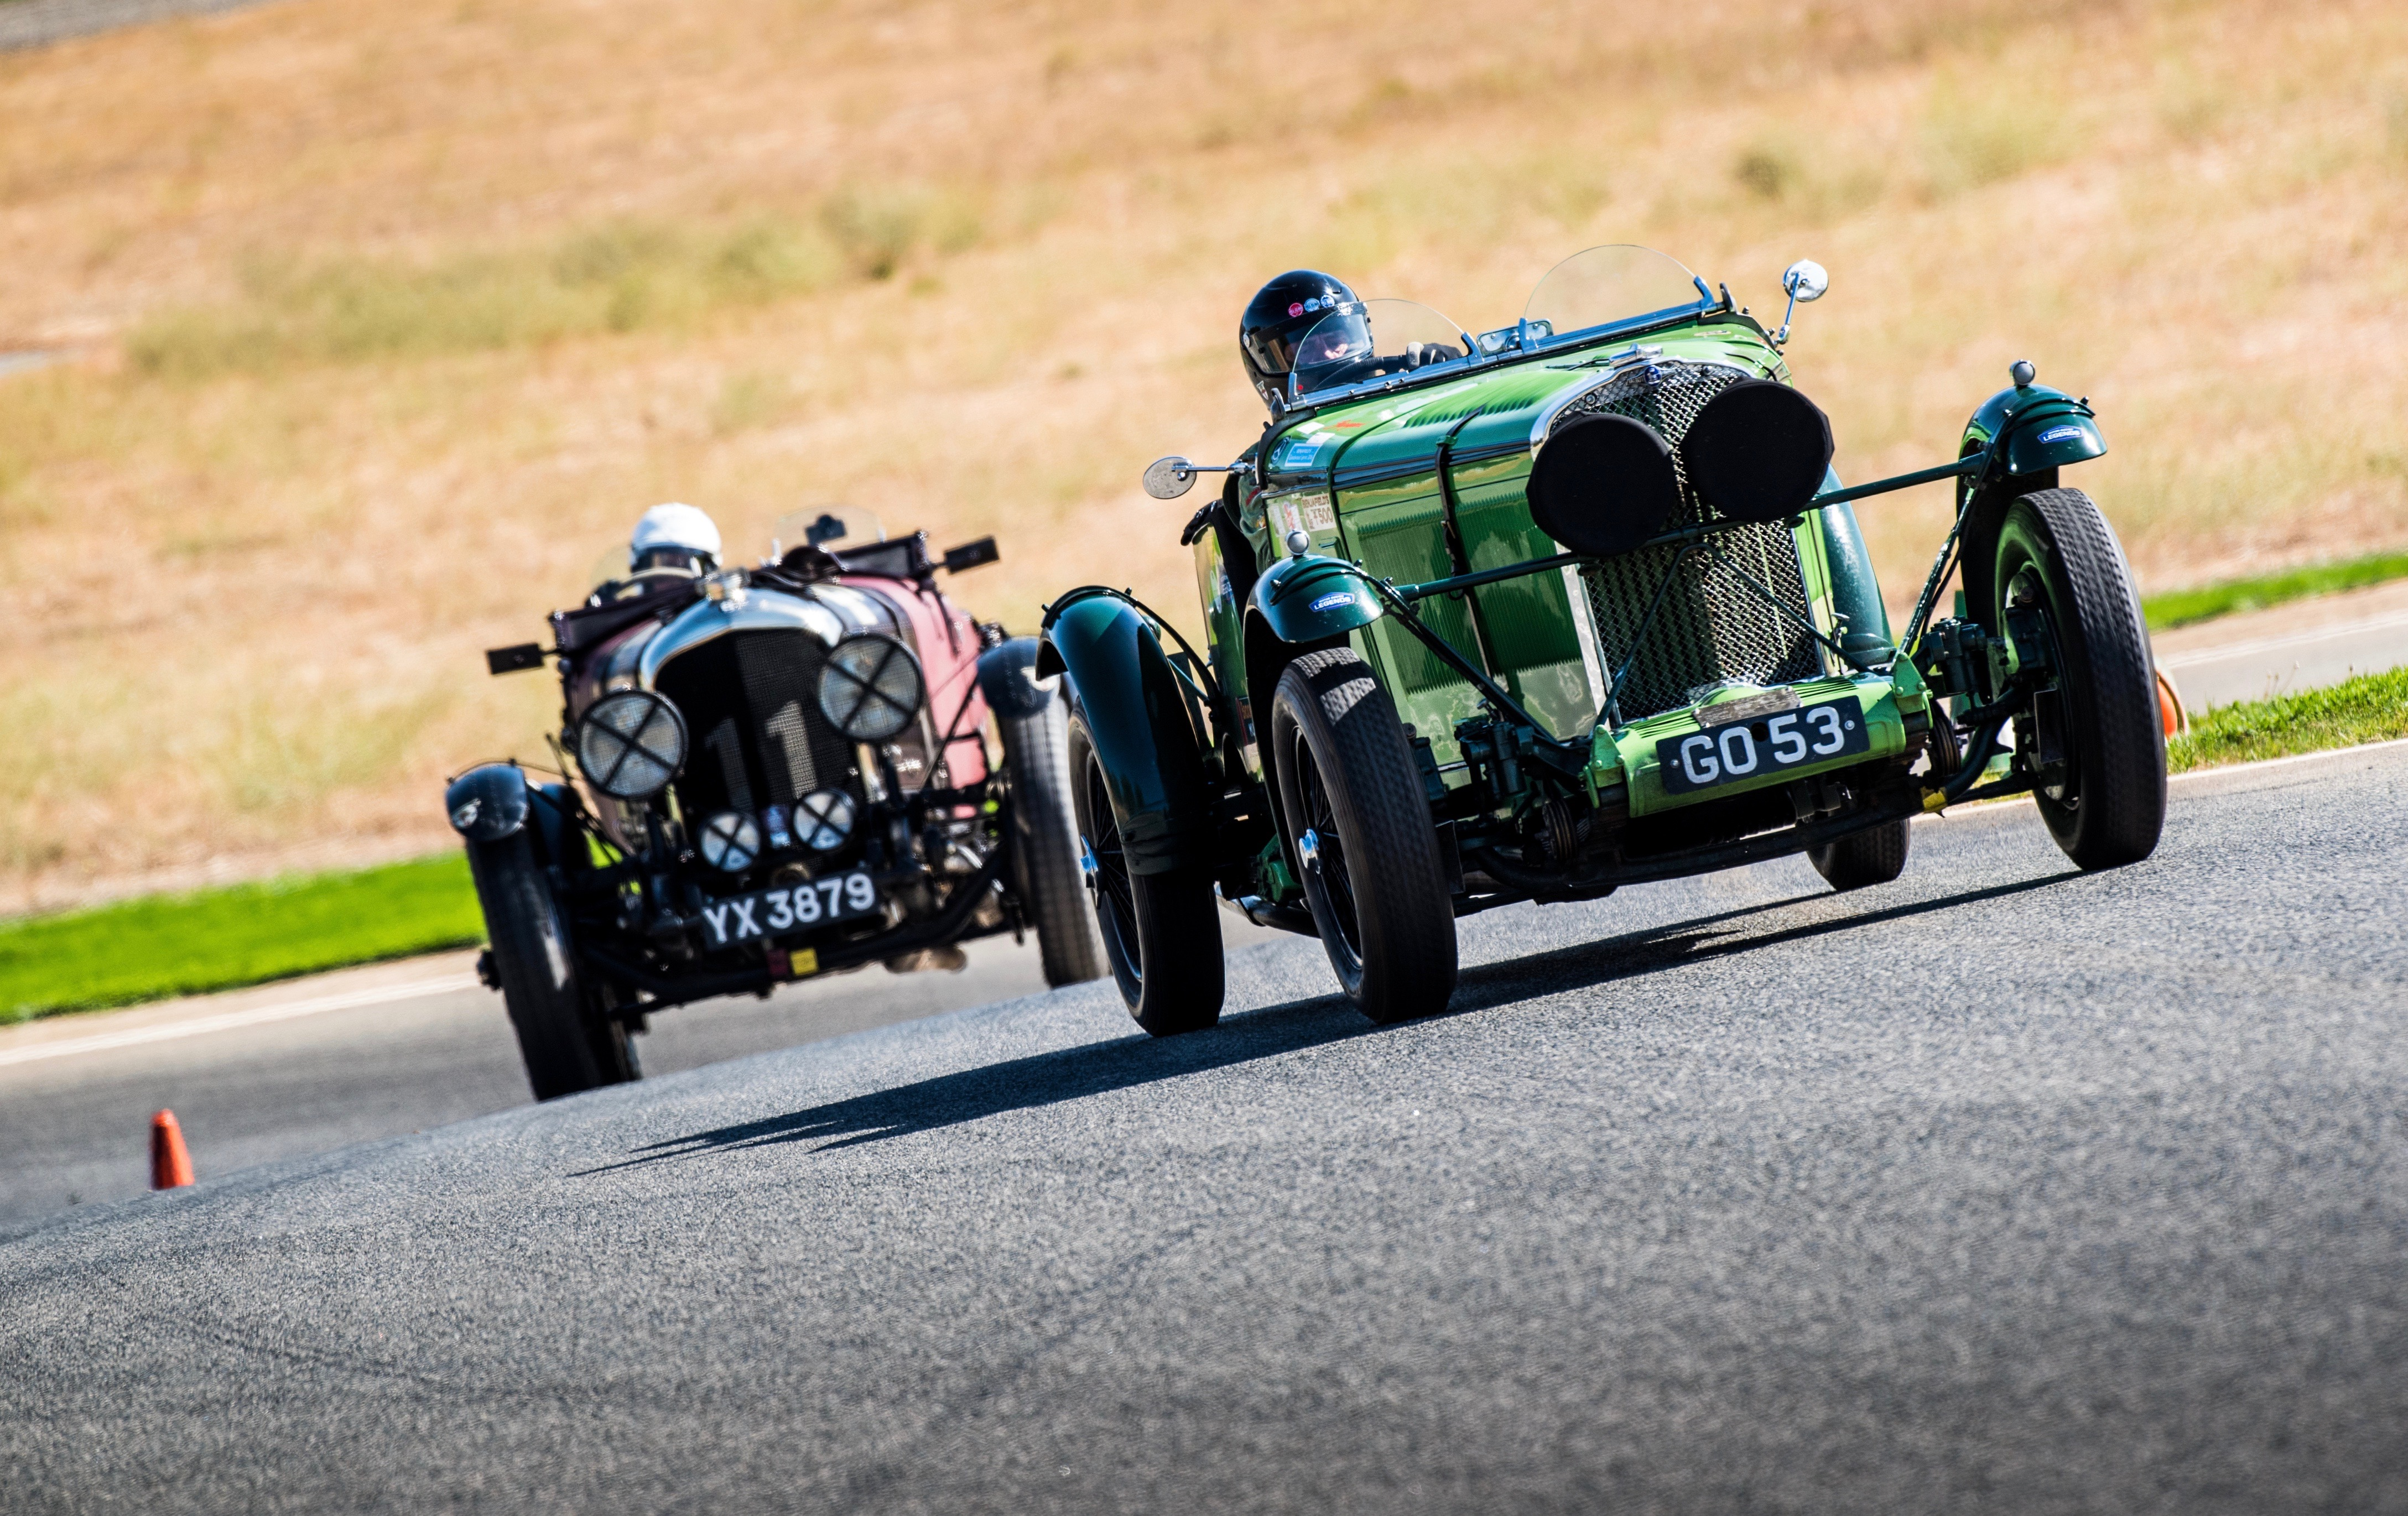 Benjafield's club revives 500-mile race, but with vintage vehicles